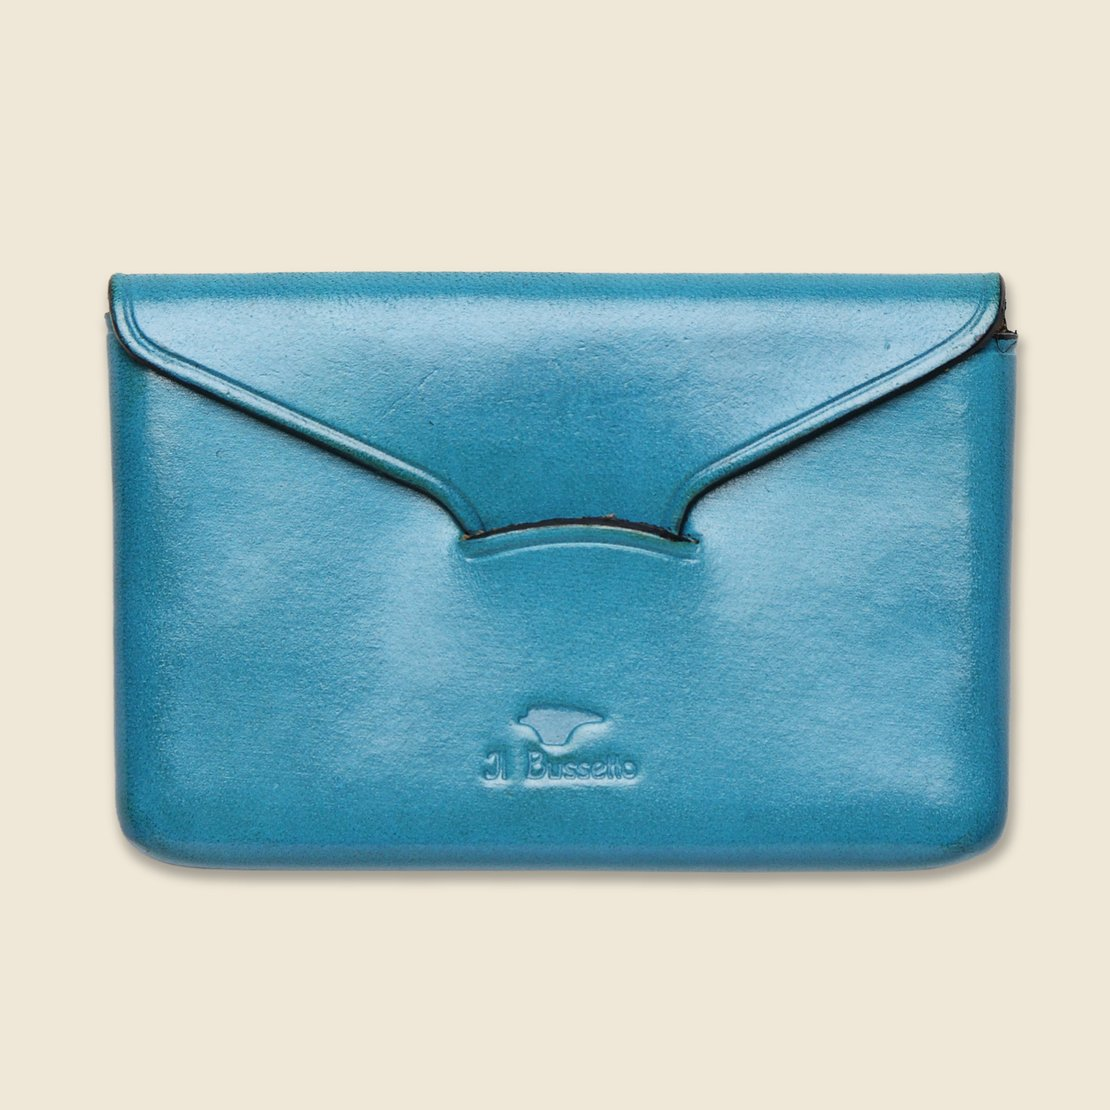 Il Bussetto Business Card Holder - Cadet Blue